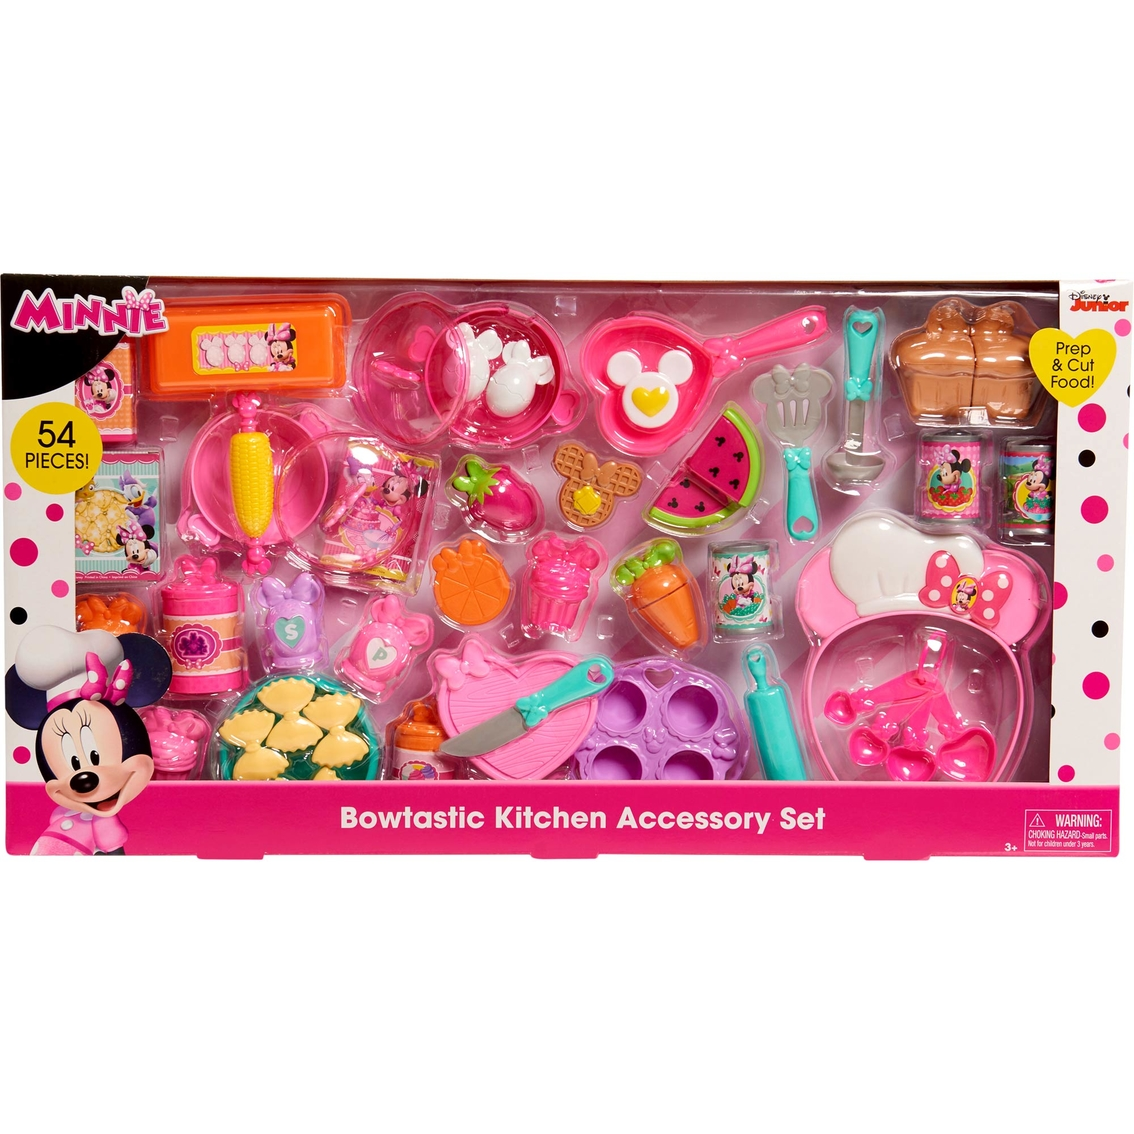 Minnie Mouse Play Kitchen: Disney Minnie Mouse Bowtastic Kitchen Accessory Set